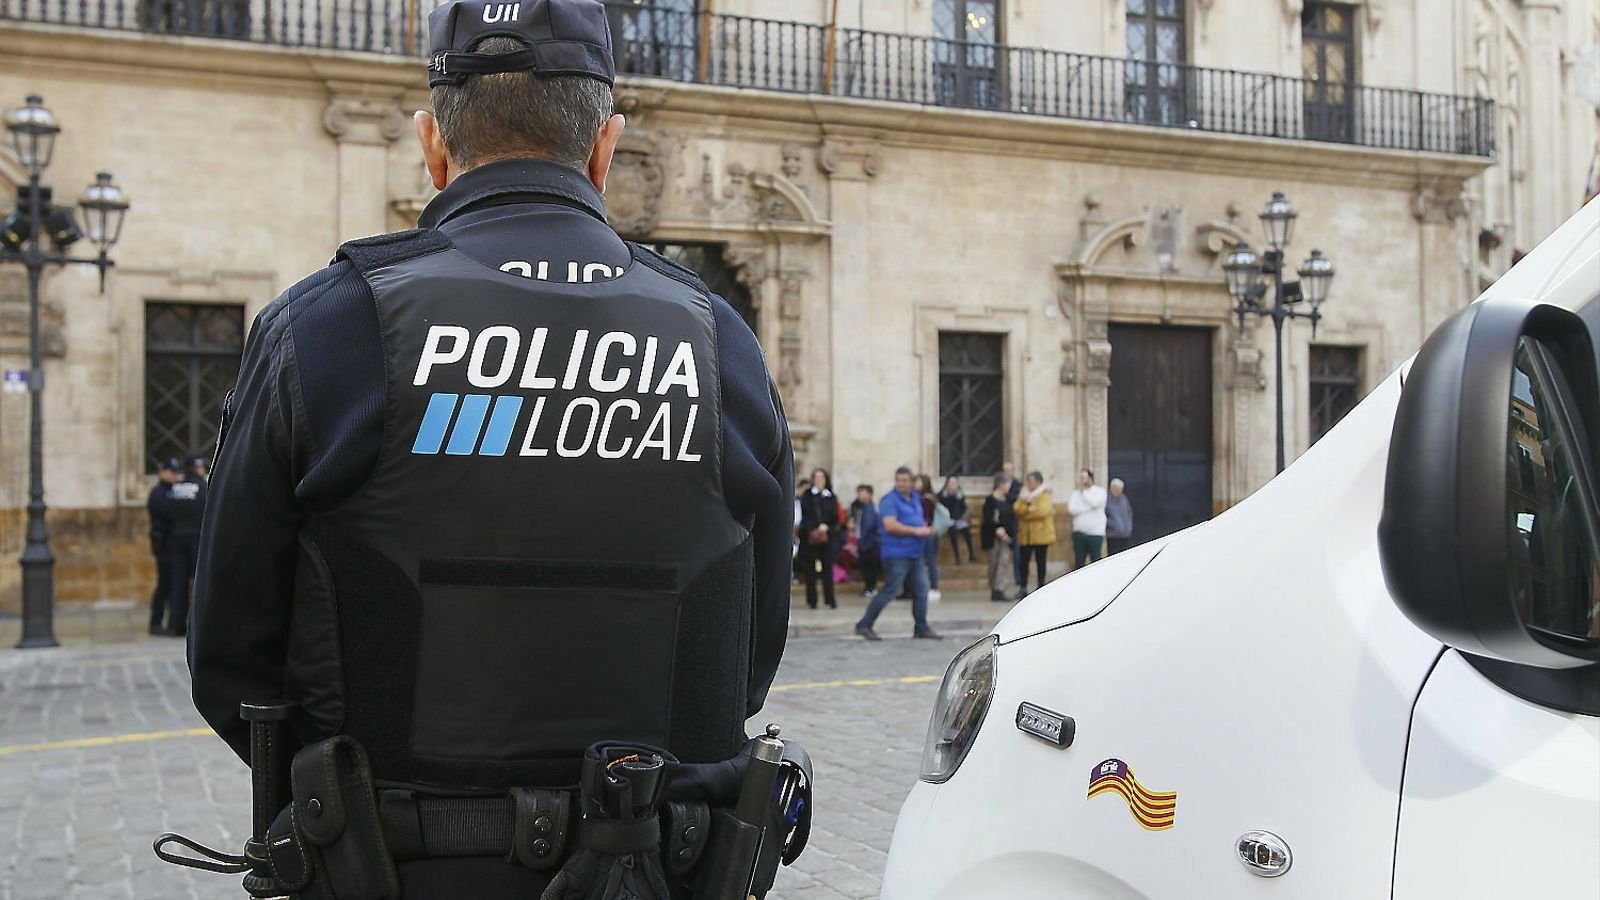 Places de policia local reservades per a exmilitars